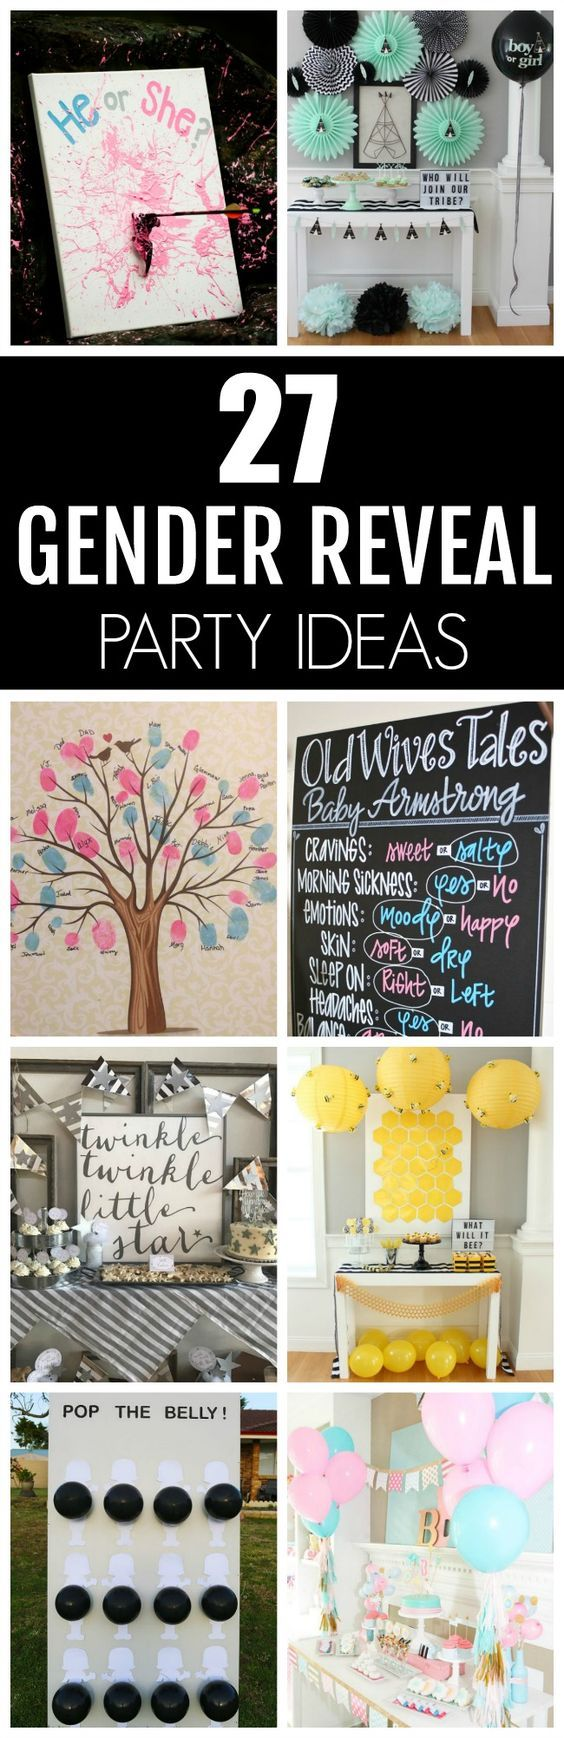 27 Creative Gender Reveal Party Ideas #genderreveal #genderrevealparty #genderrevealpartyideas